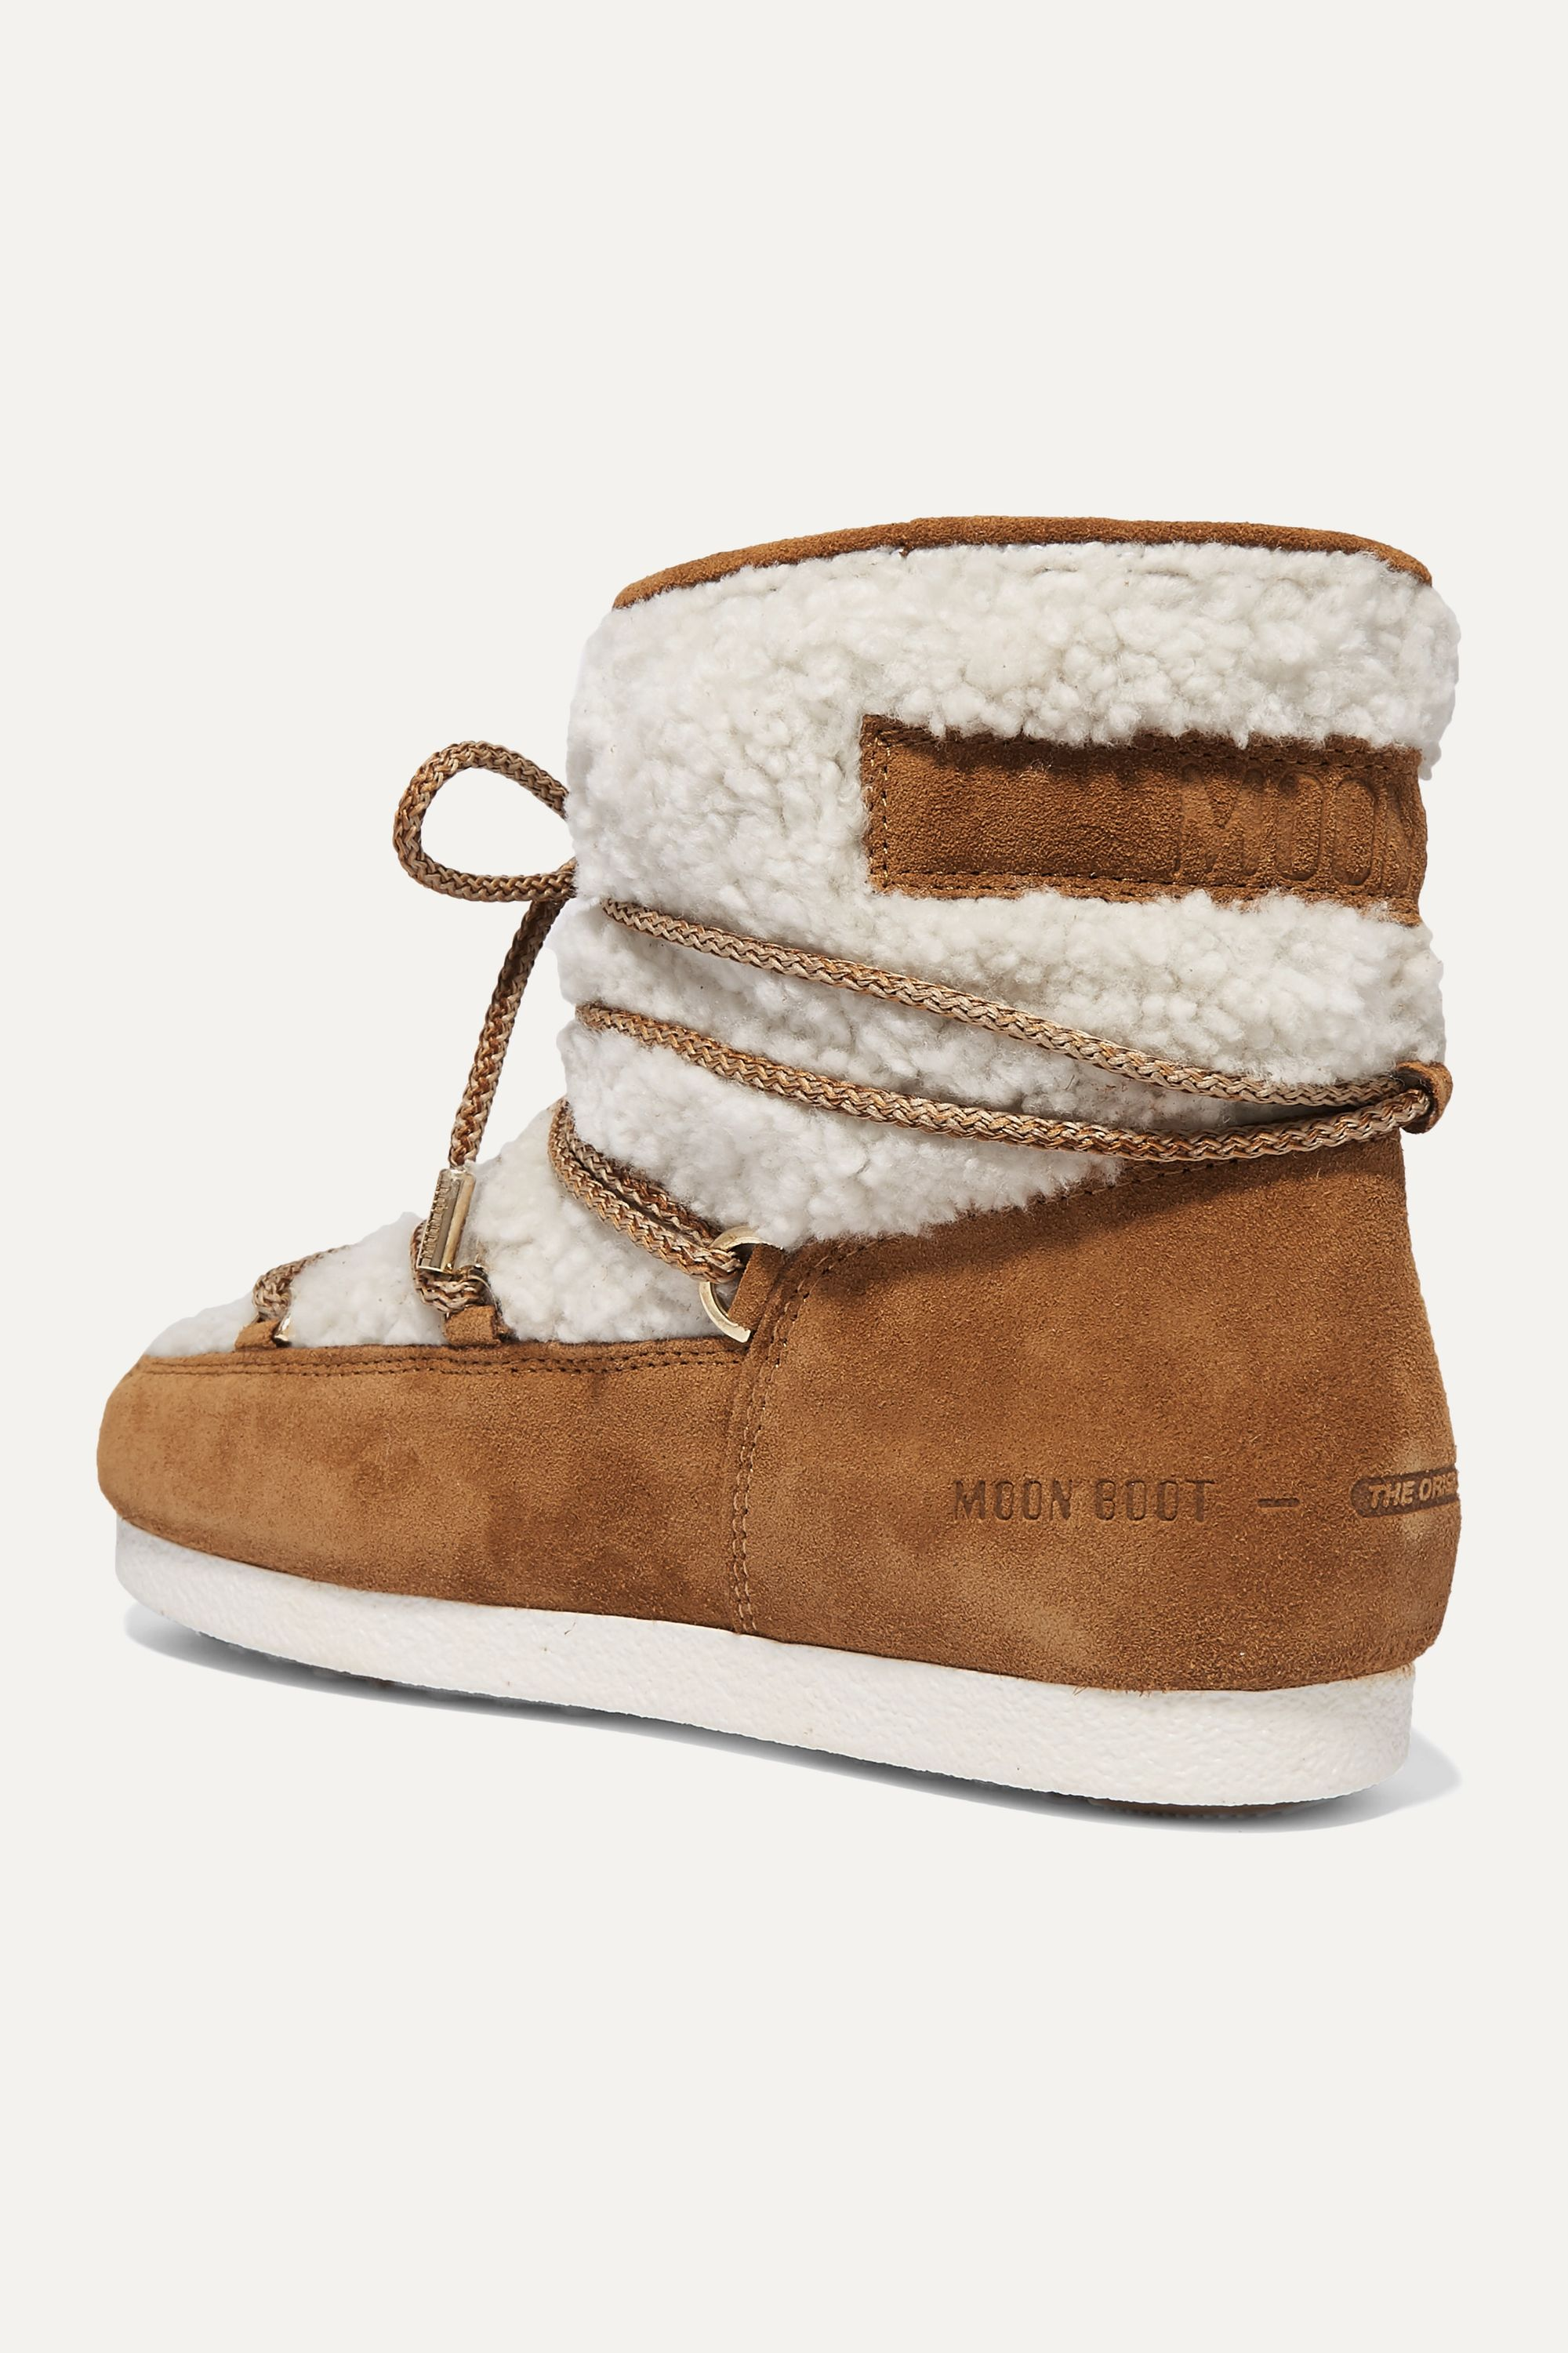 Moon Boot Suede and shearling ankle boots